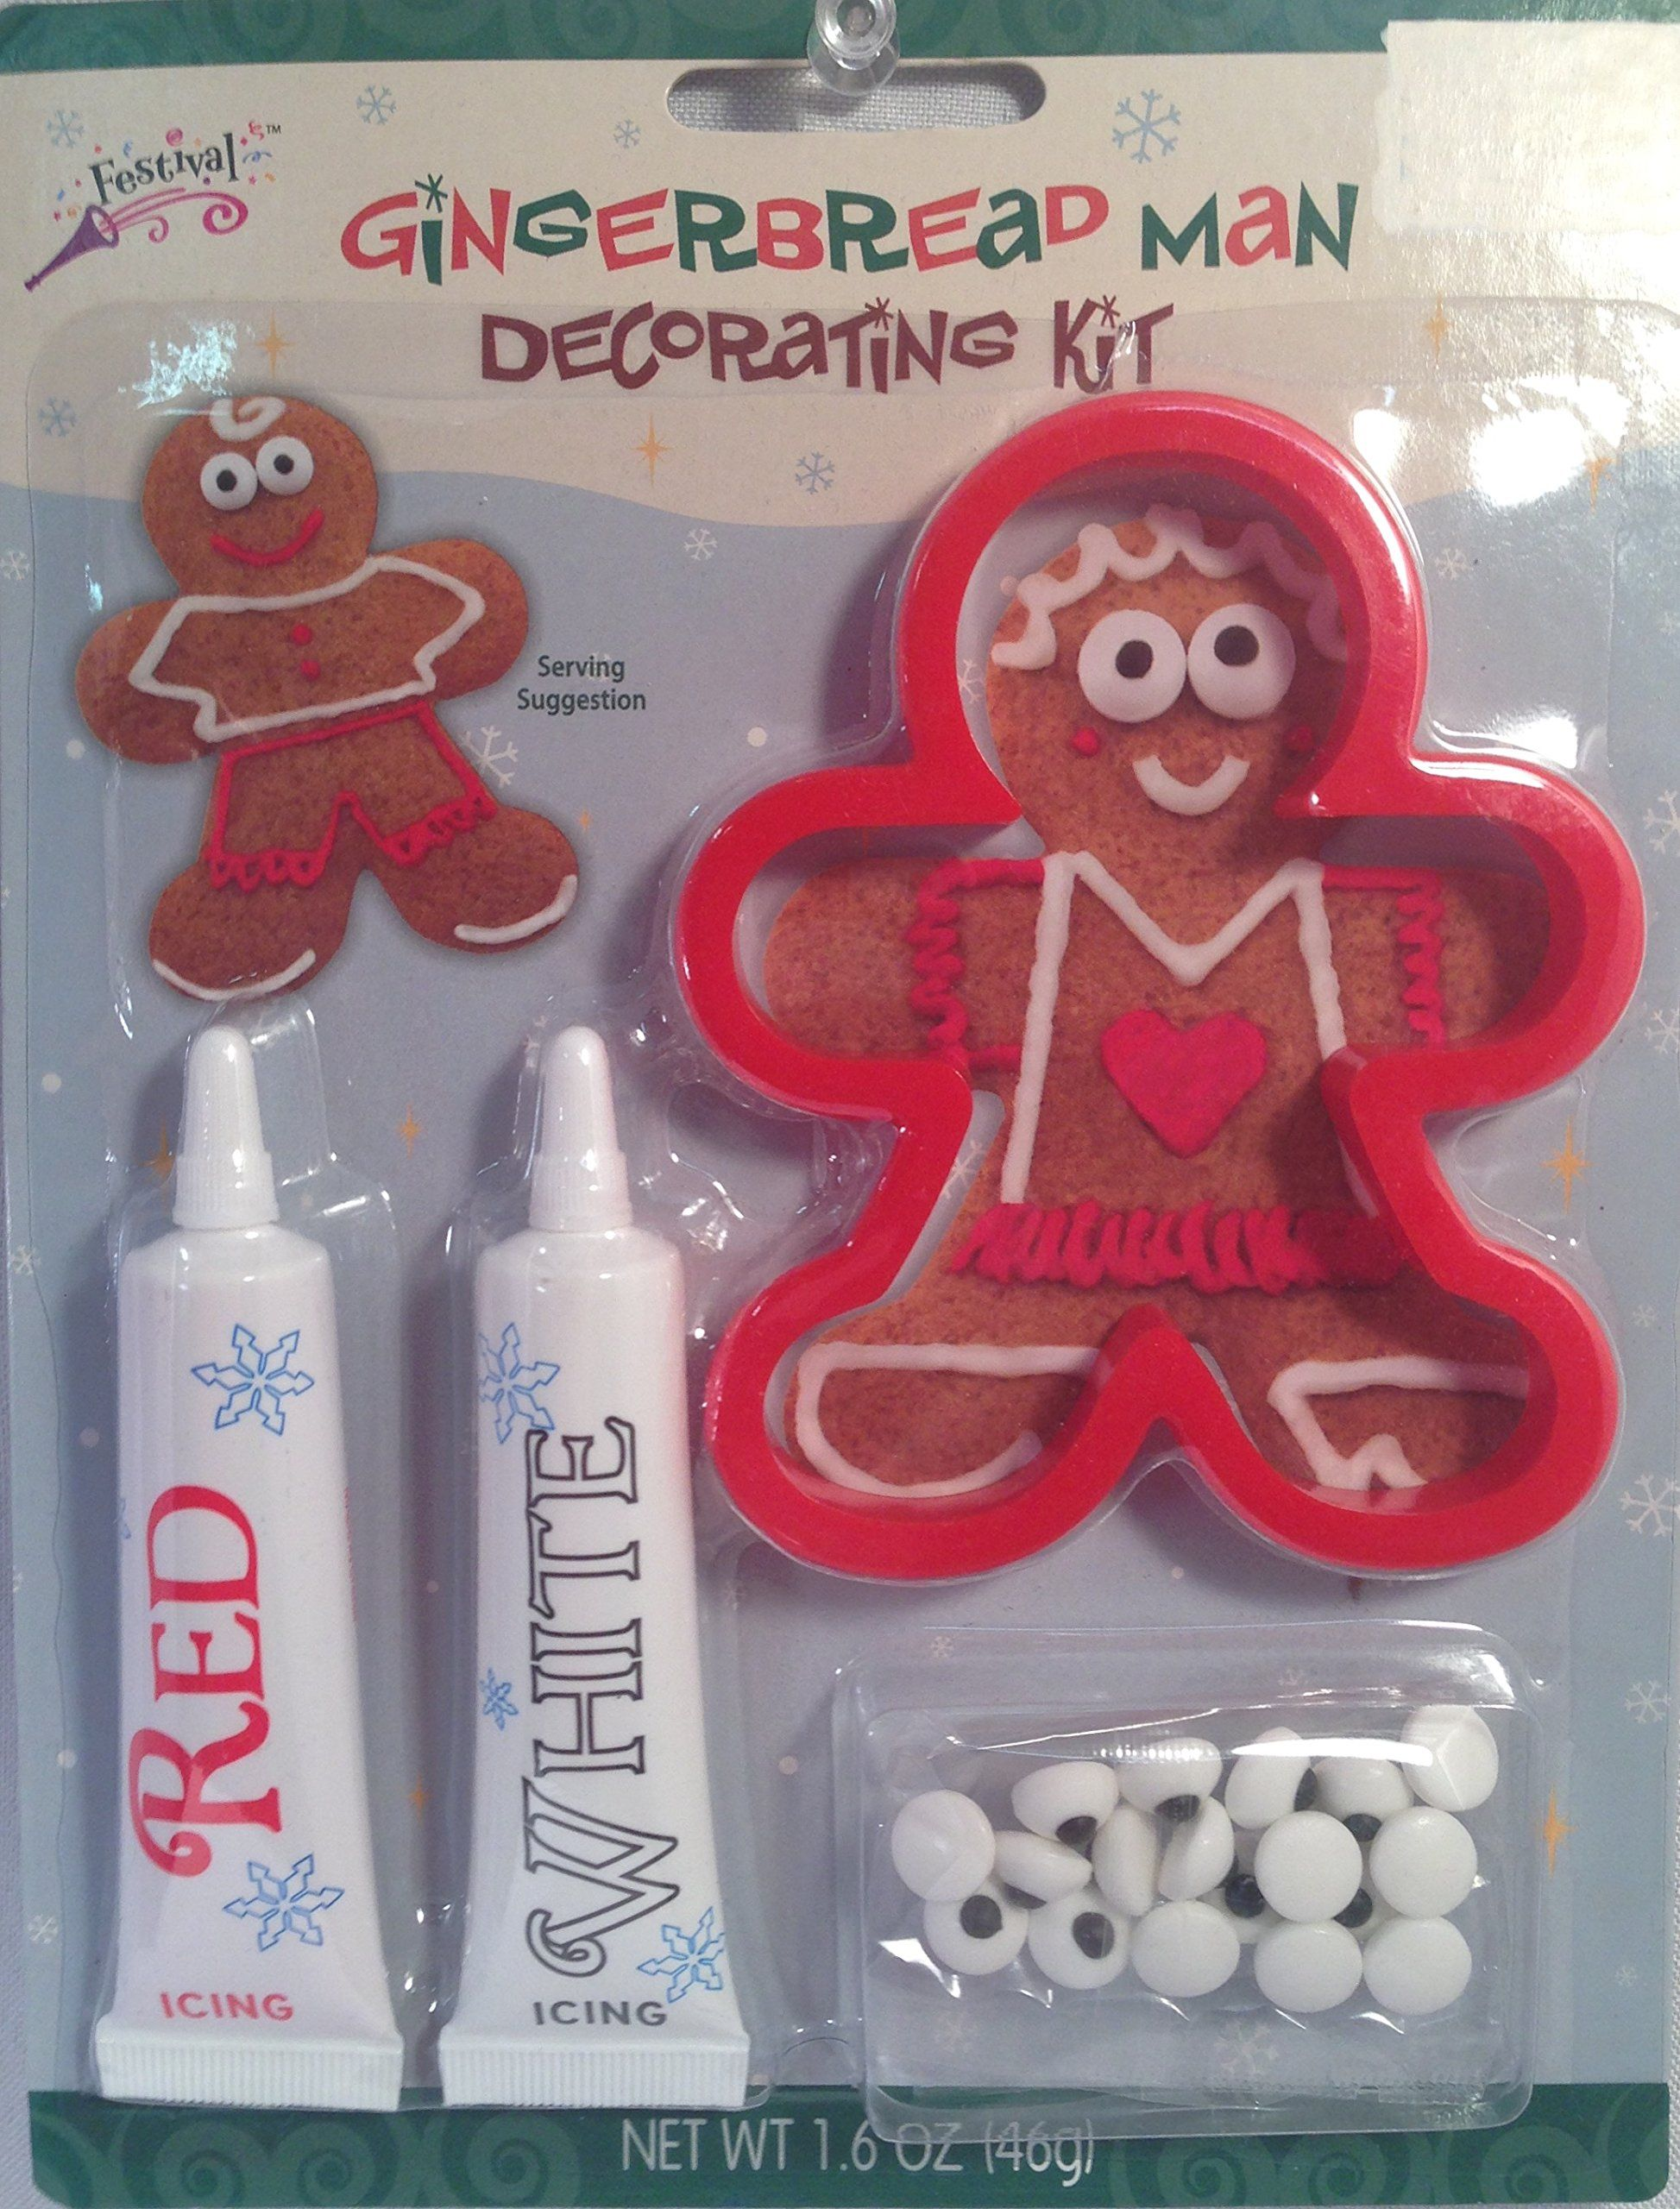 Gingerbread Man Decorating Kit w  cookie cutter  icing   candy eyes     Gingerbread Man Decorating Kit w  cookie cutter  icing   candy eyes by  Festival